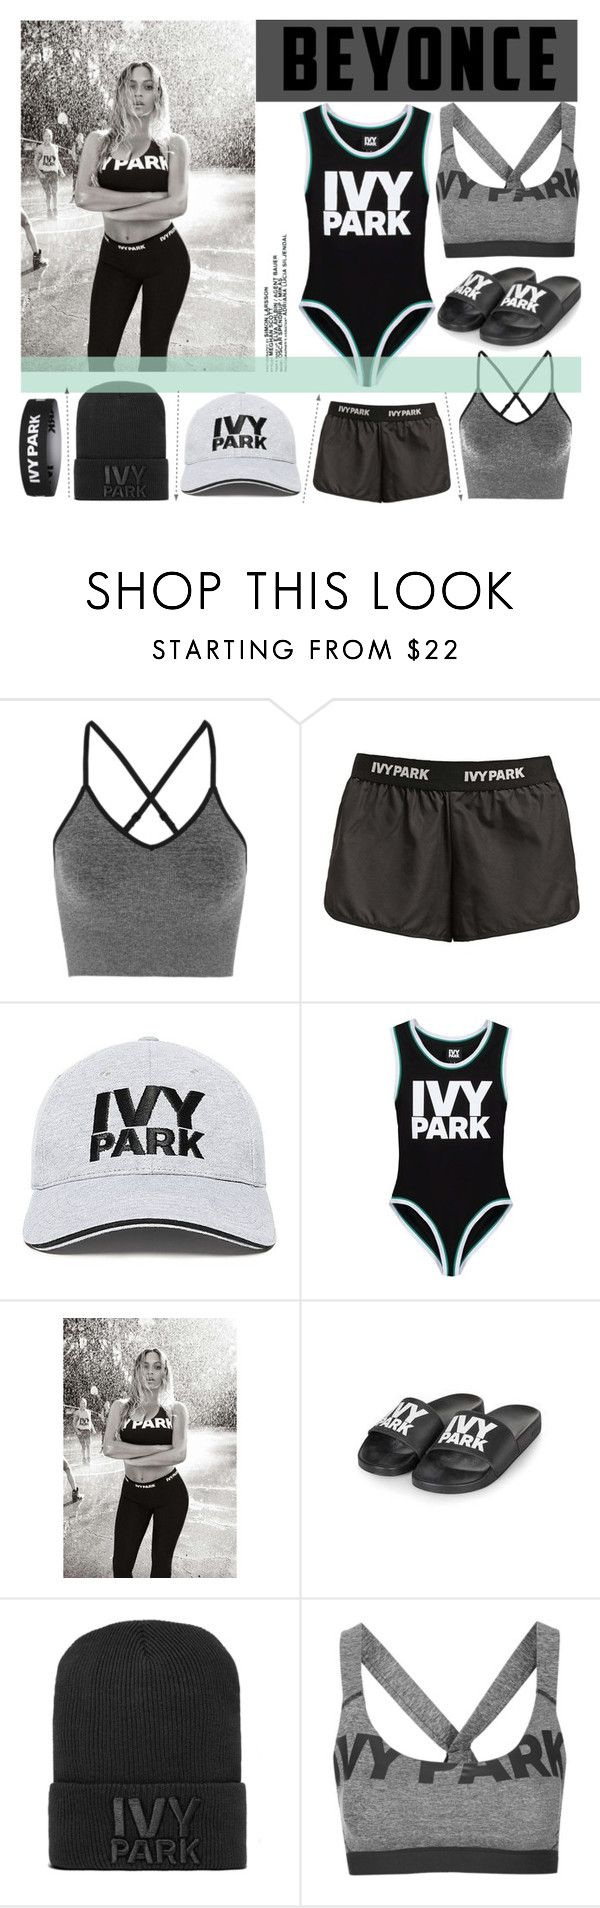 """""""Ivy Park"""" by agg1994 ❤ liked on Polyvore featuring Ivy Park, Topshop and Beyonce"""